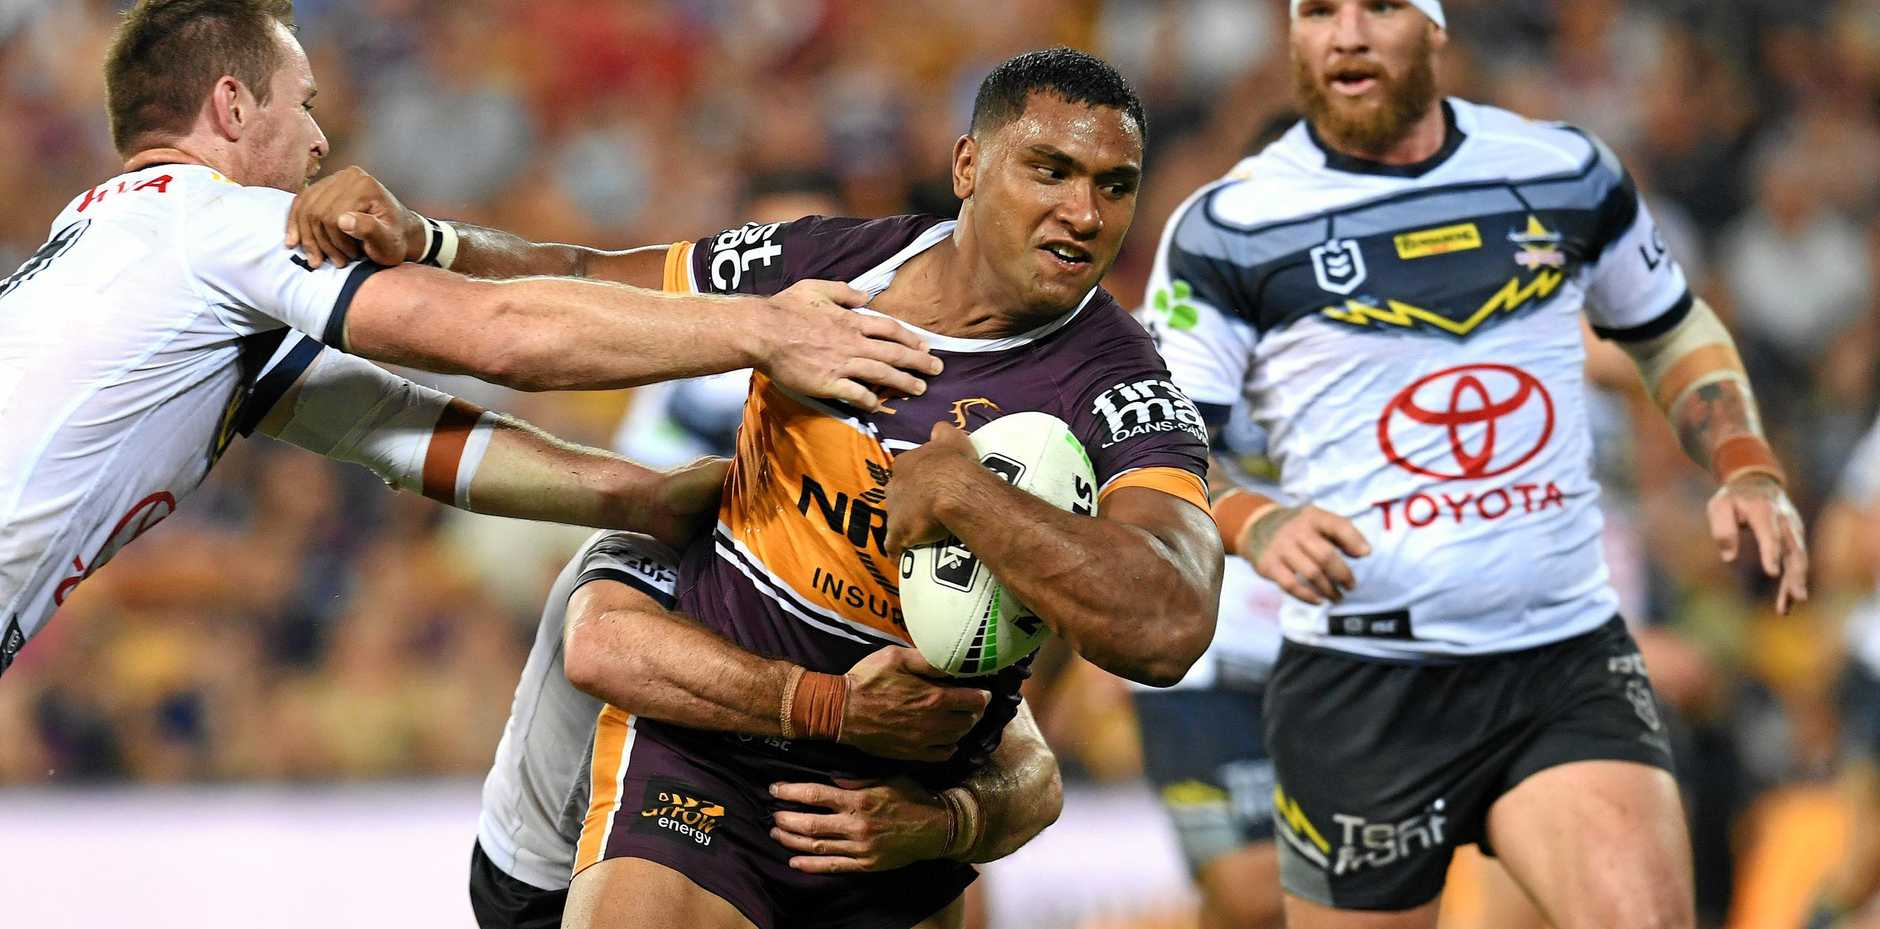 Tevita Pangai Jnr will be looking for more of the same when he lines up against the Dragons.